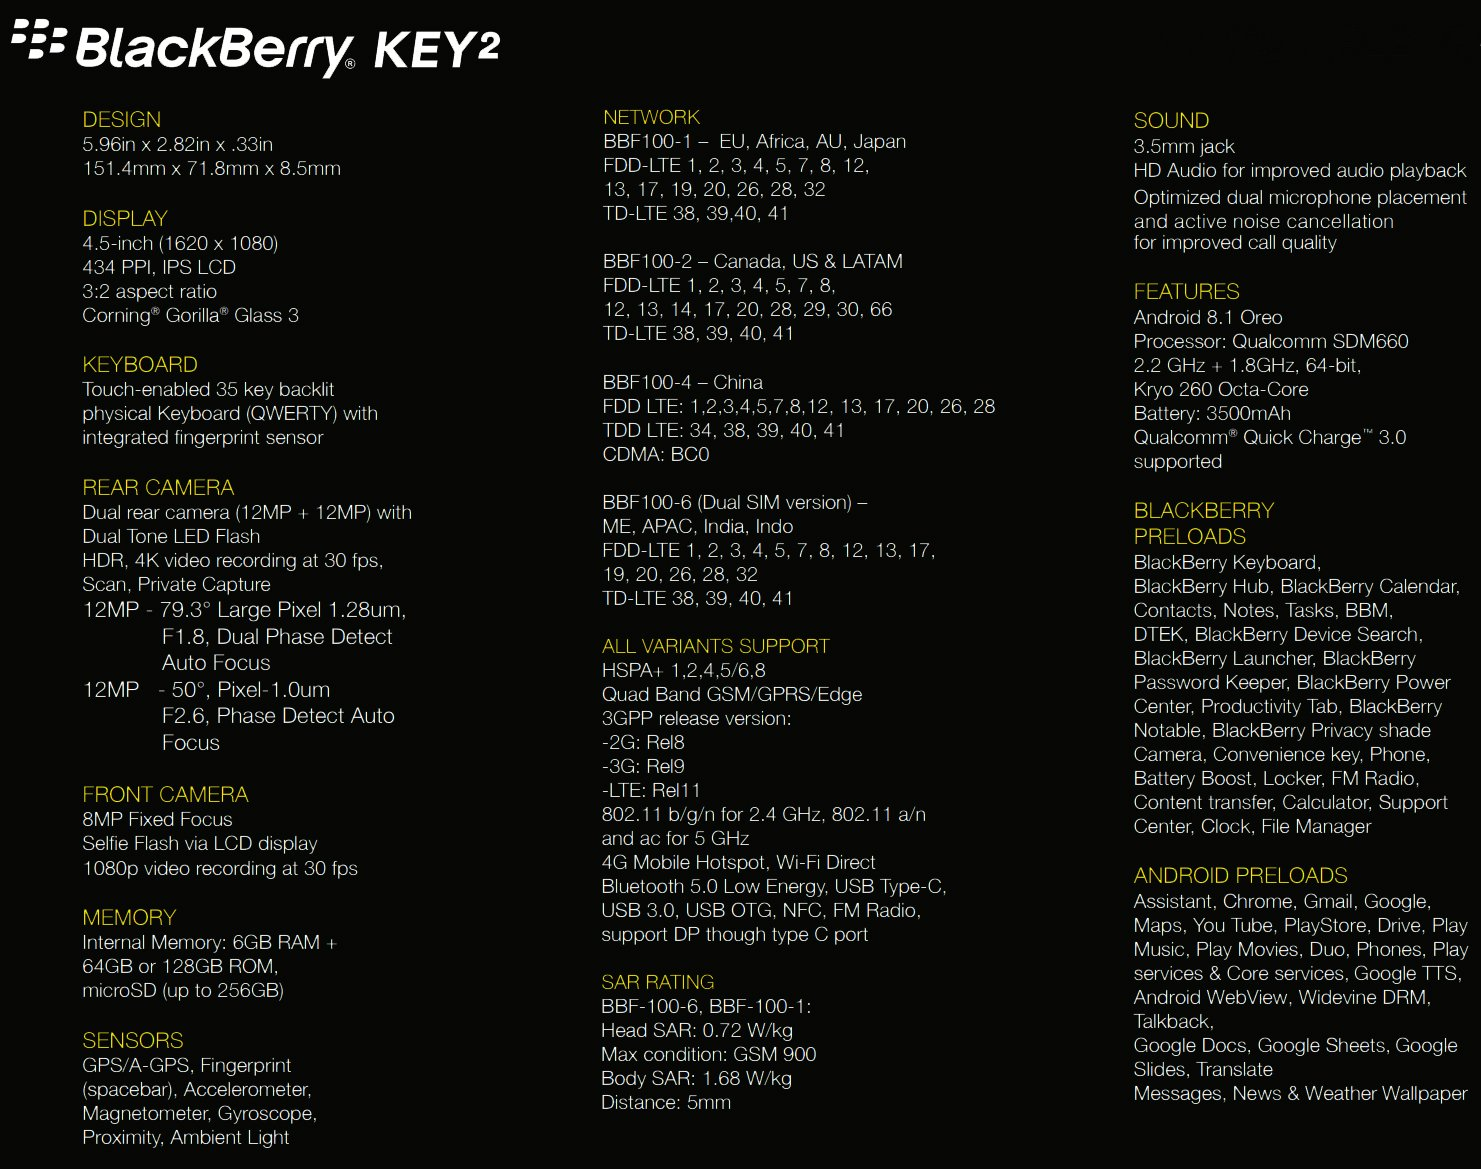 BlackBerry KEY2 Specification sheet